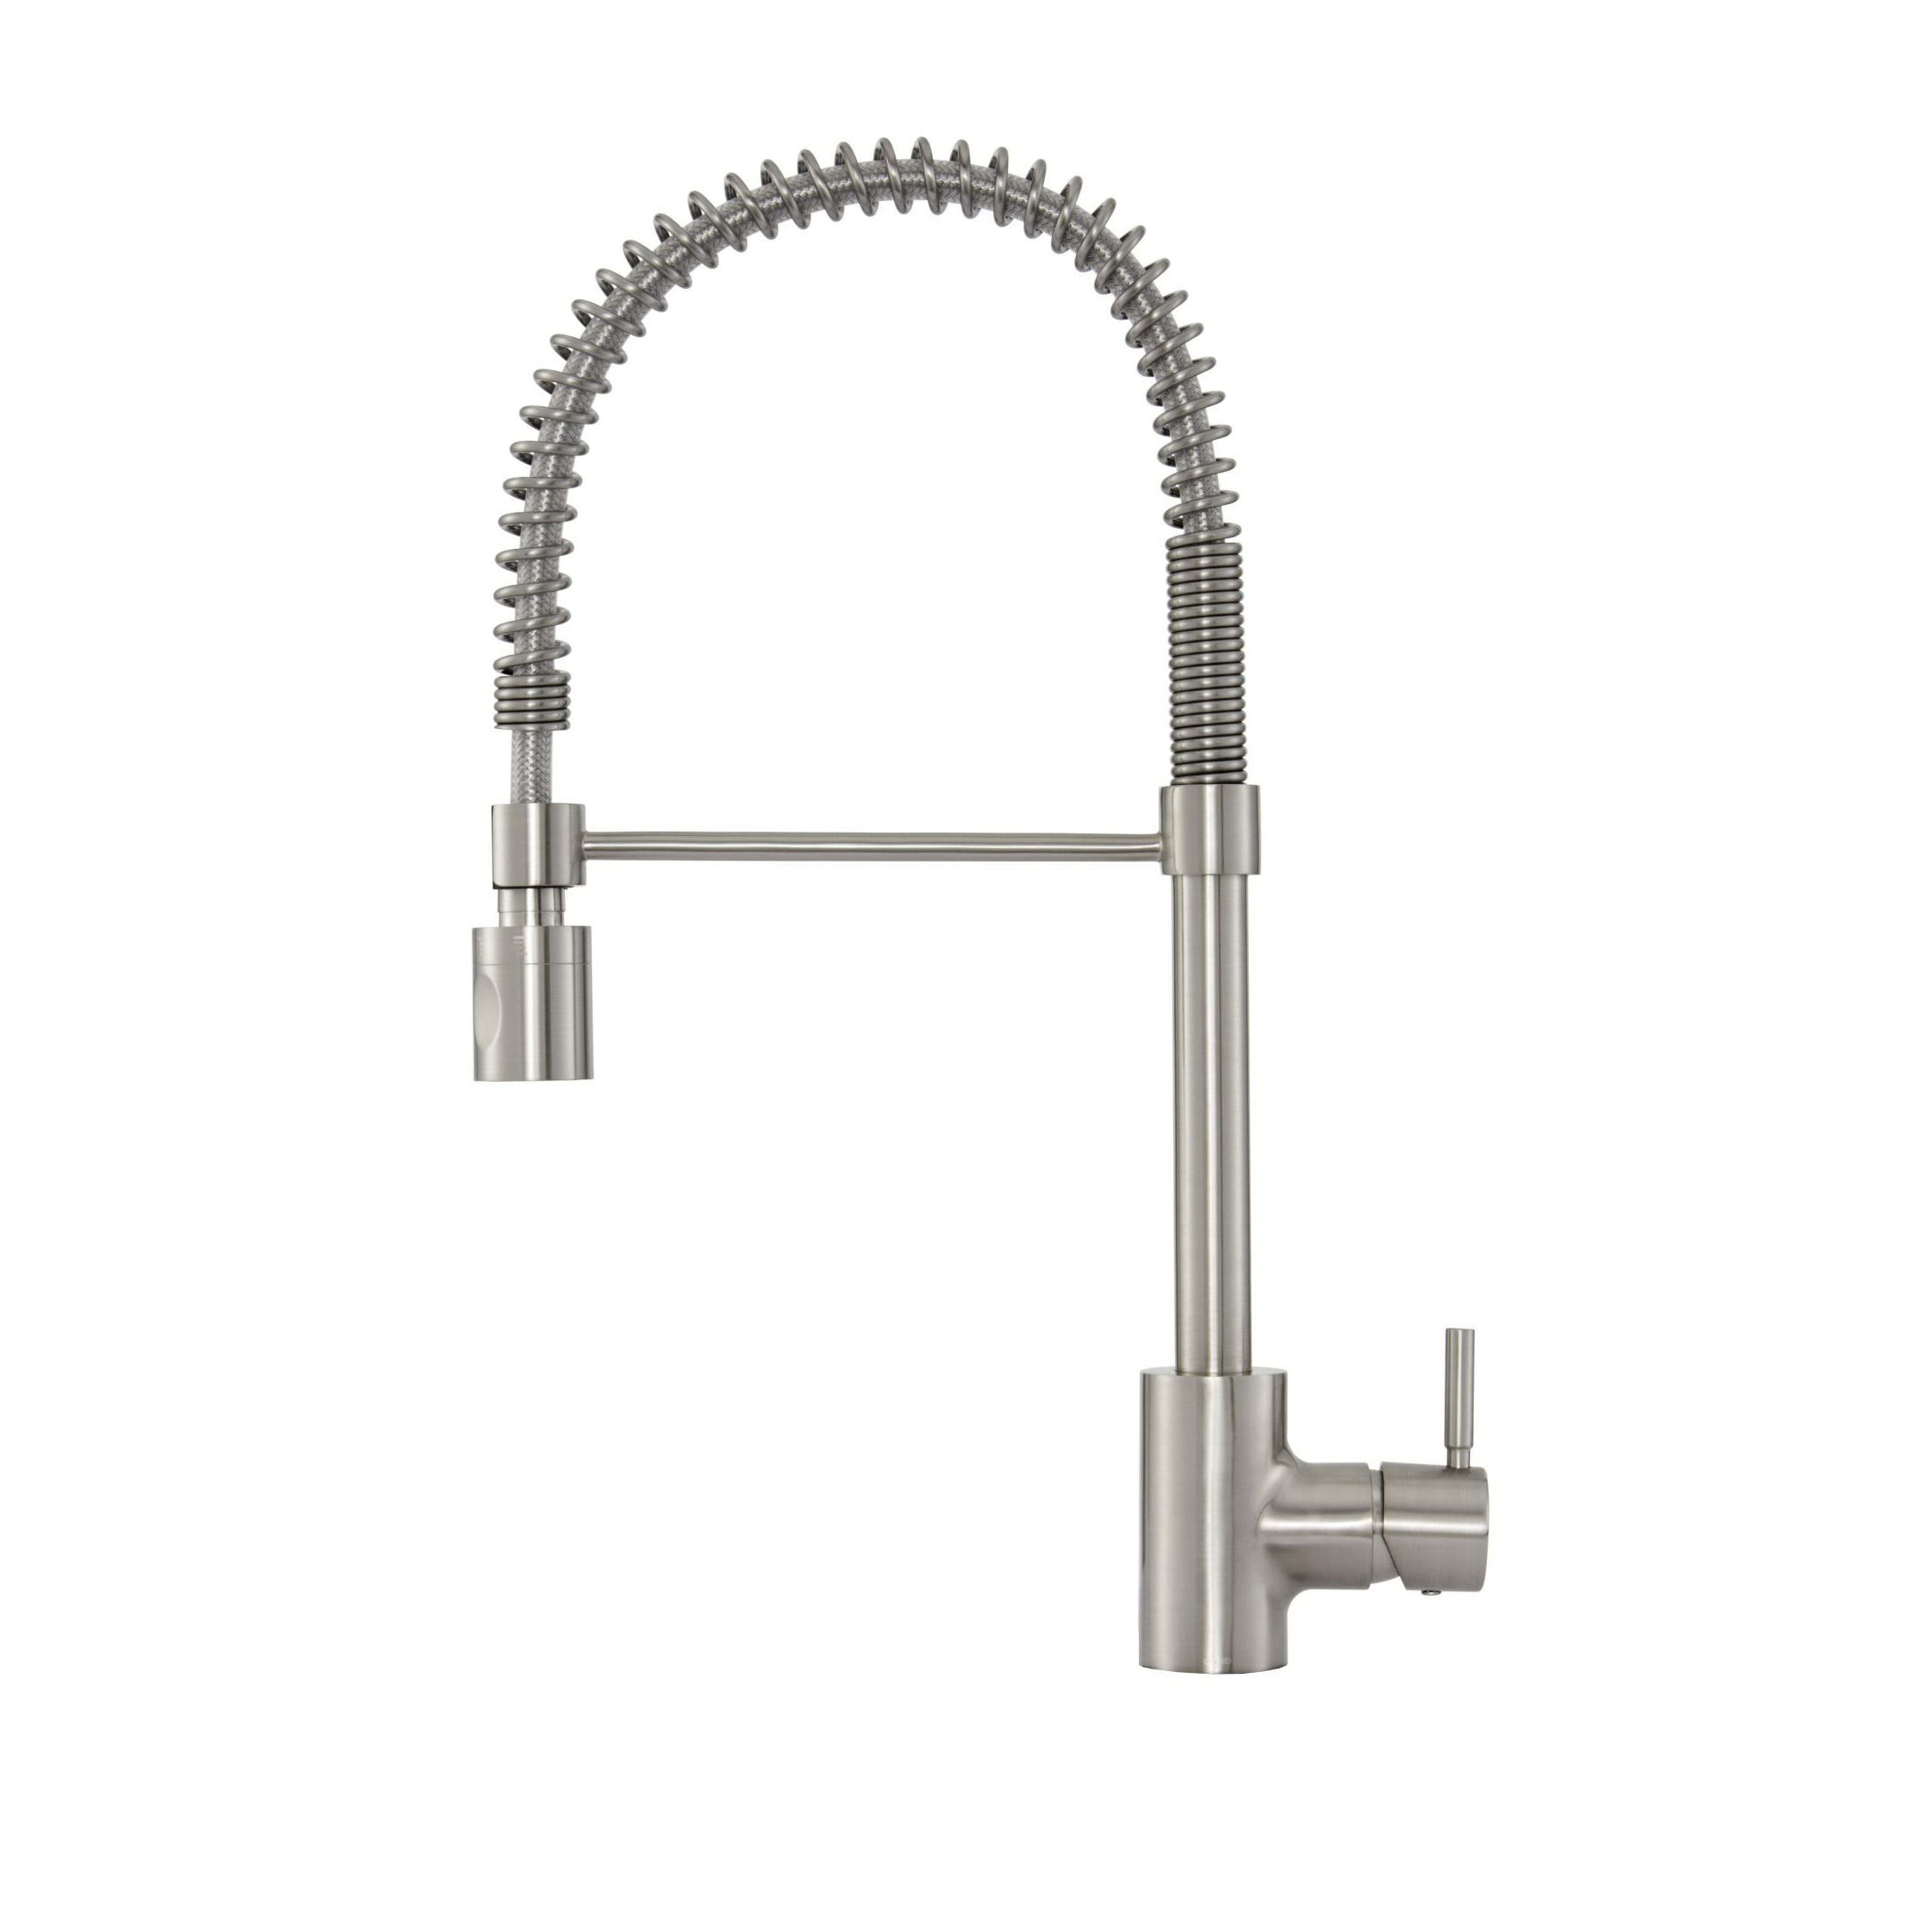 Danze® DH451188SS The Foodie® Pull-Down Pre-Rinse Kitchen Faucet, 1.75 gpm Flow Rate, 360 deg Spring Swivel Spout, Import